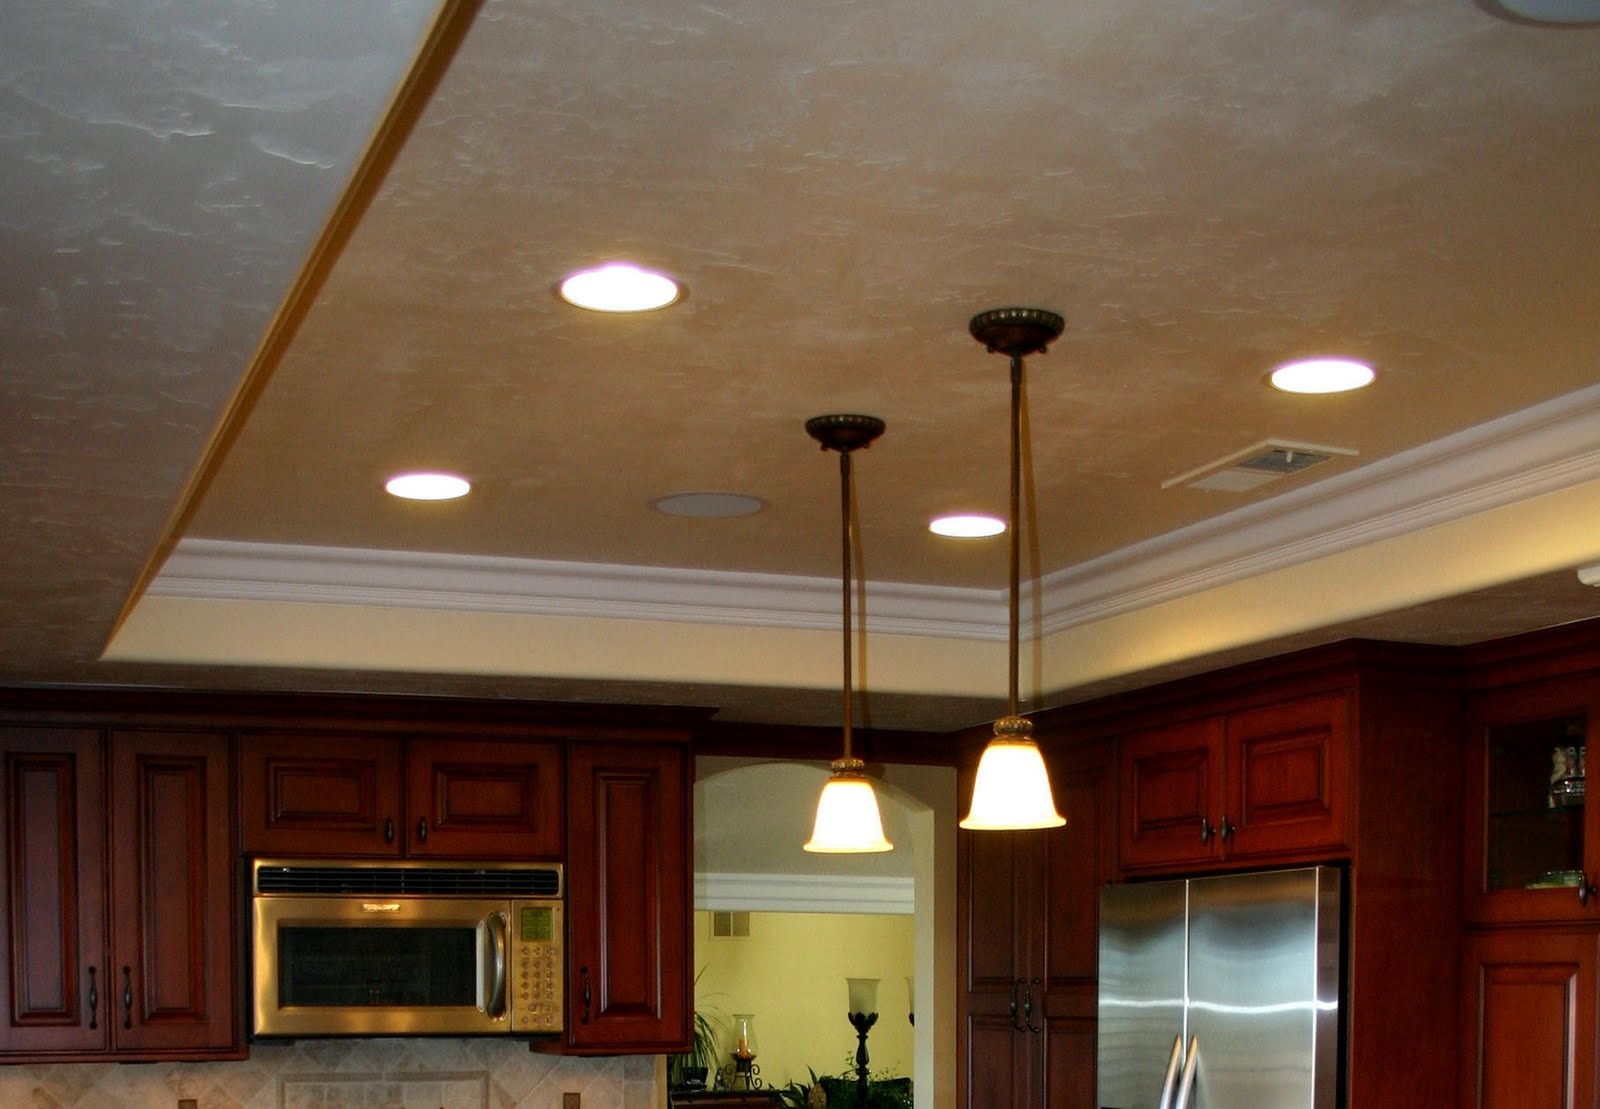 Lights For Kitchen Ceiling Best Countertop C B I D Home Decor And Design Bonnies Old